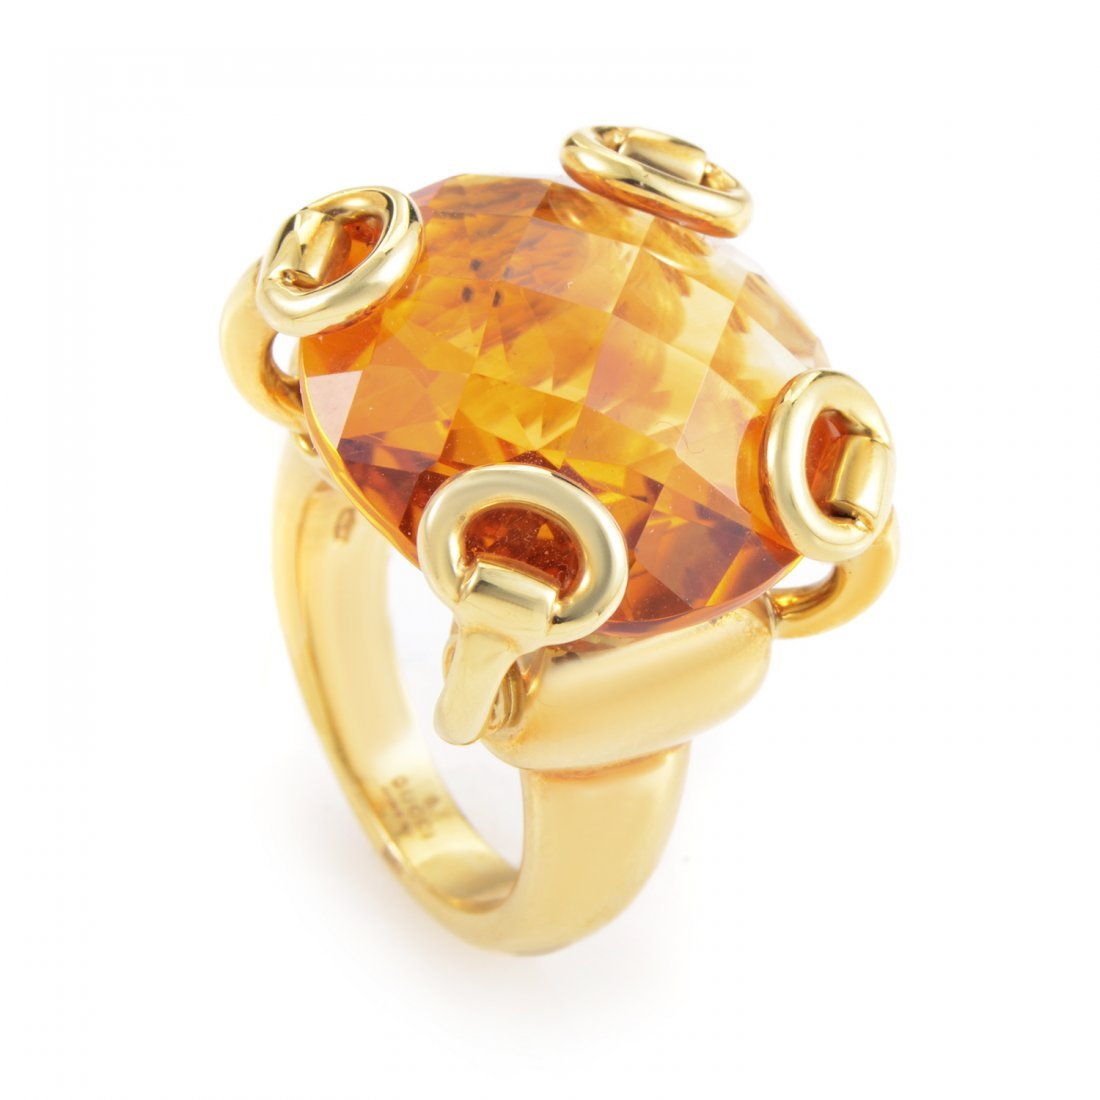 Gucci Horsebit 18K Yellow Gold Citrine Ring